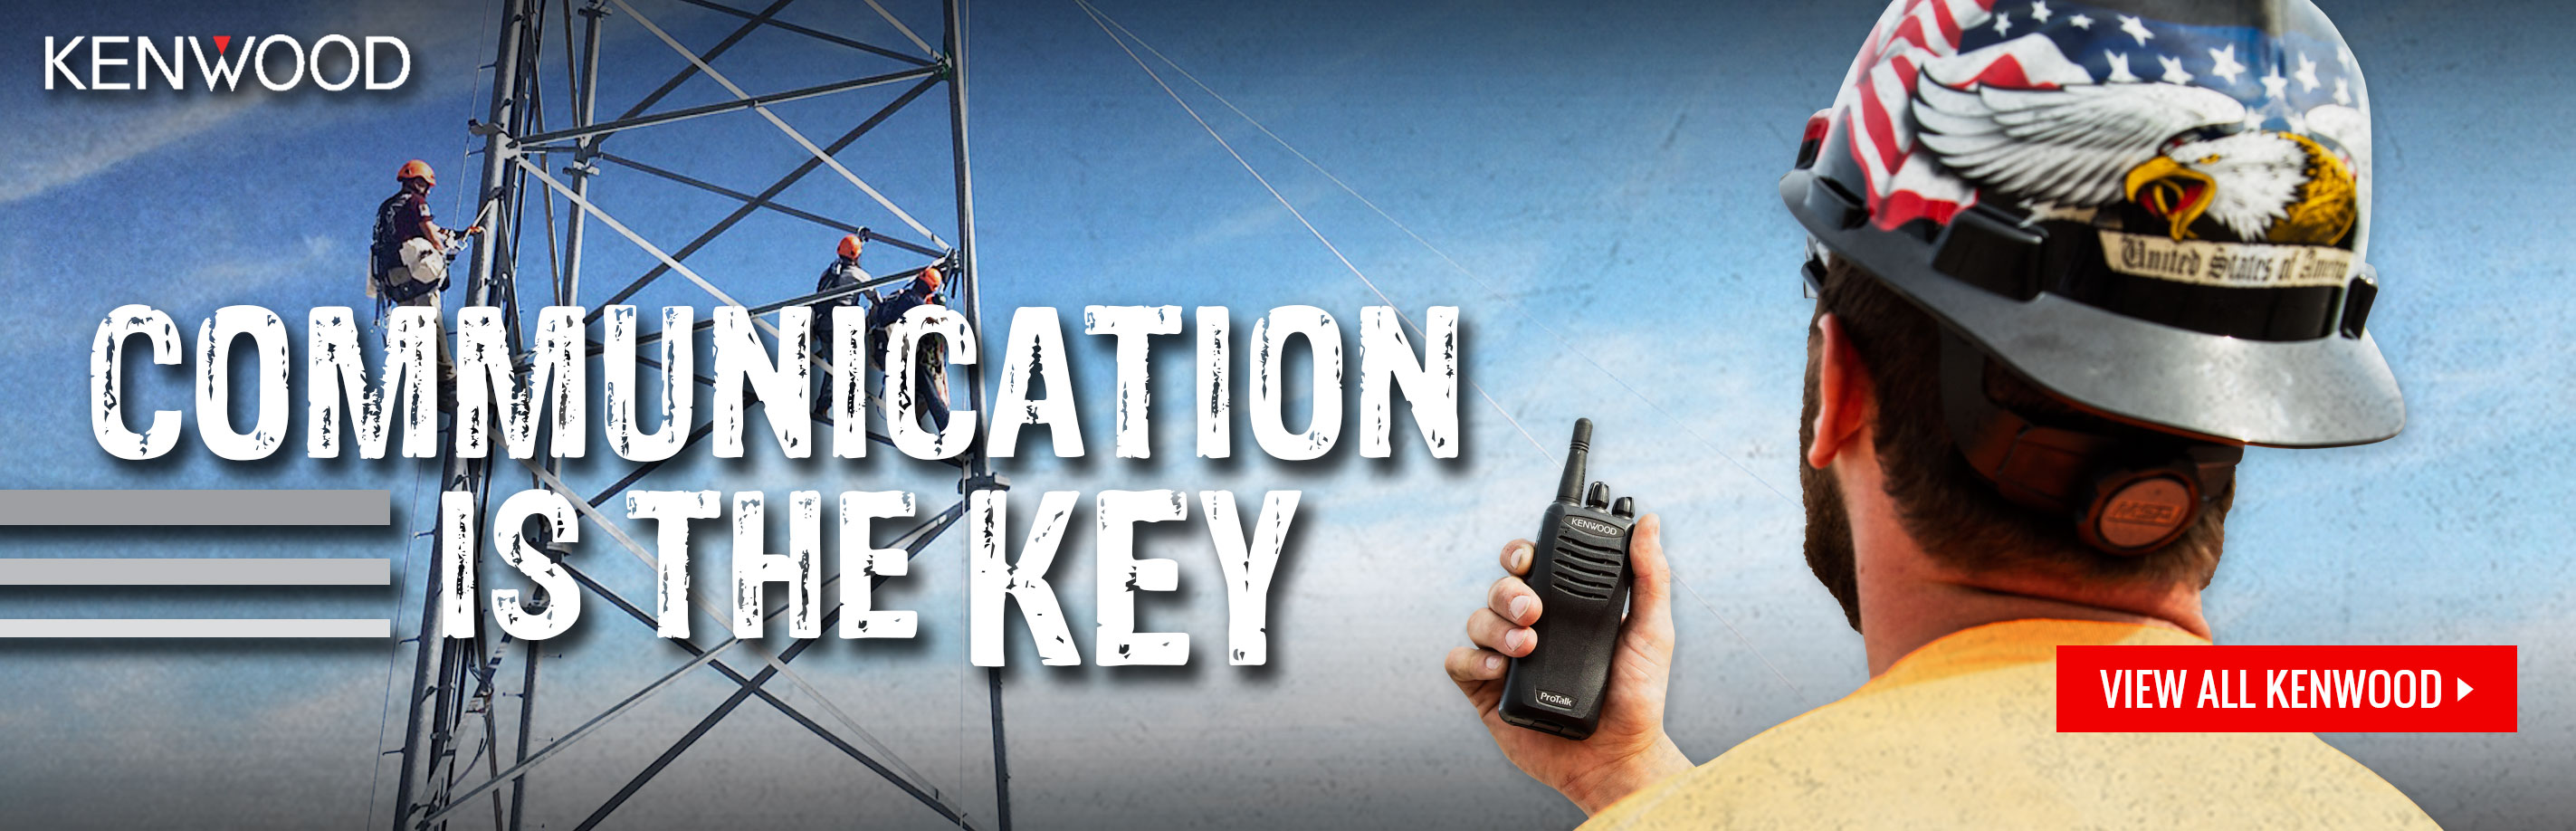 Digital and analog two way radios and radio accessories available at GME Supply - qualifying radios have rebates through September 30, 2020